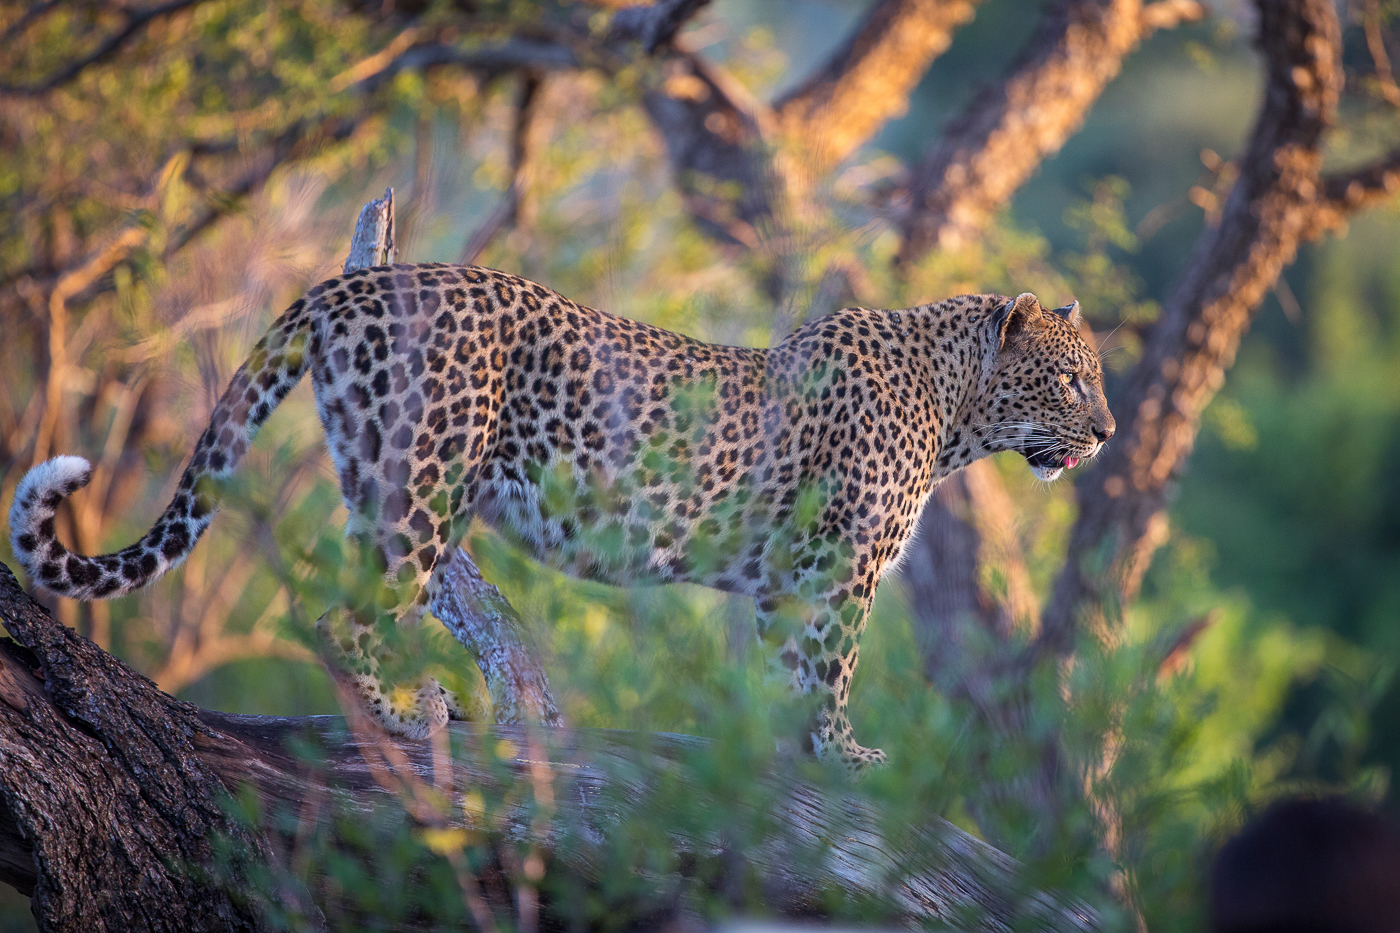 mashaba female leopard scanning